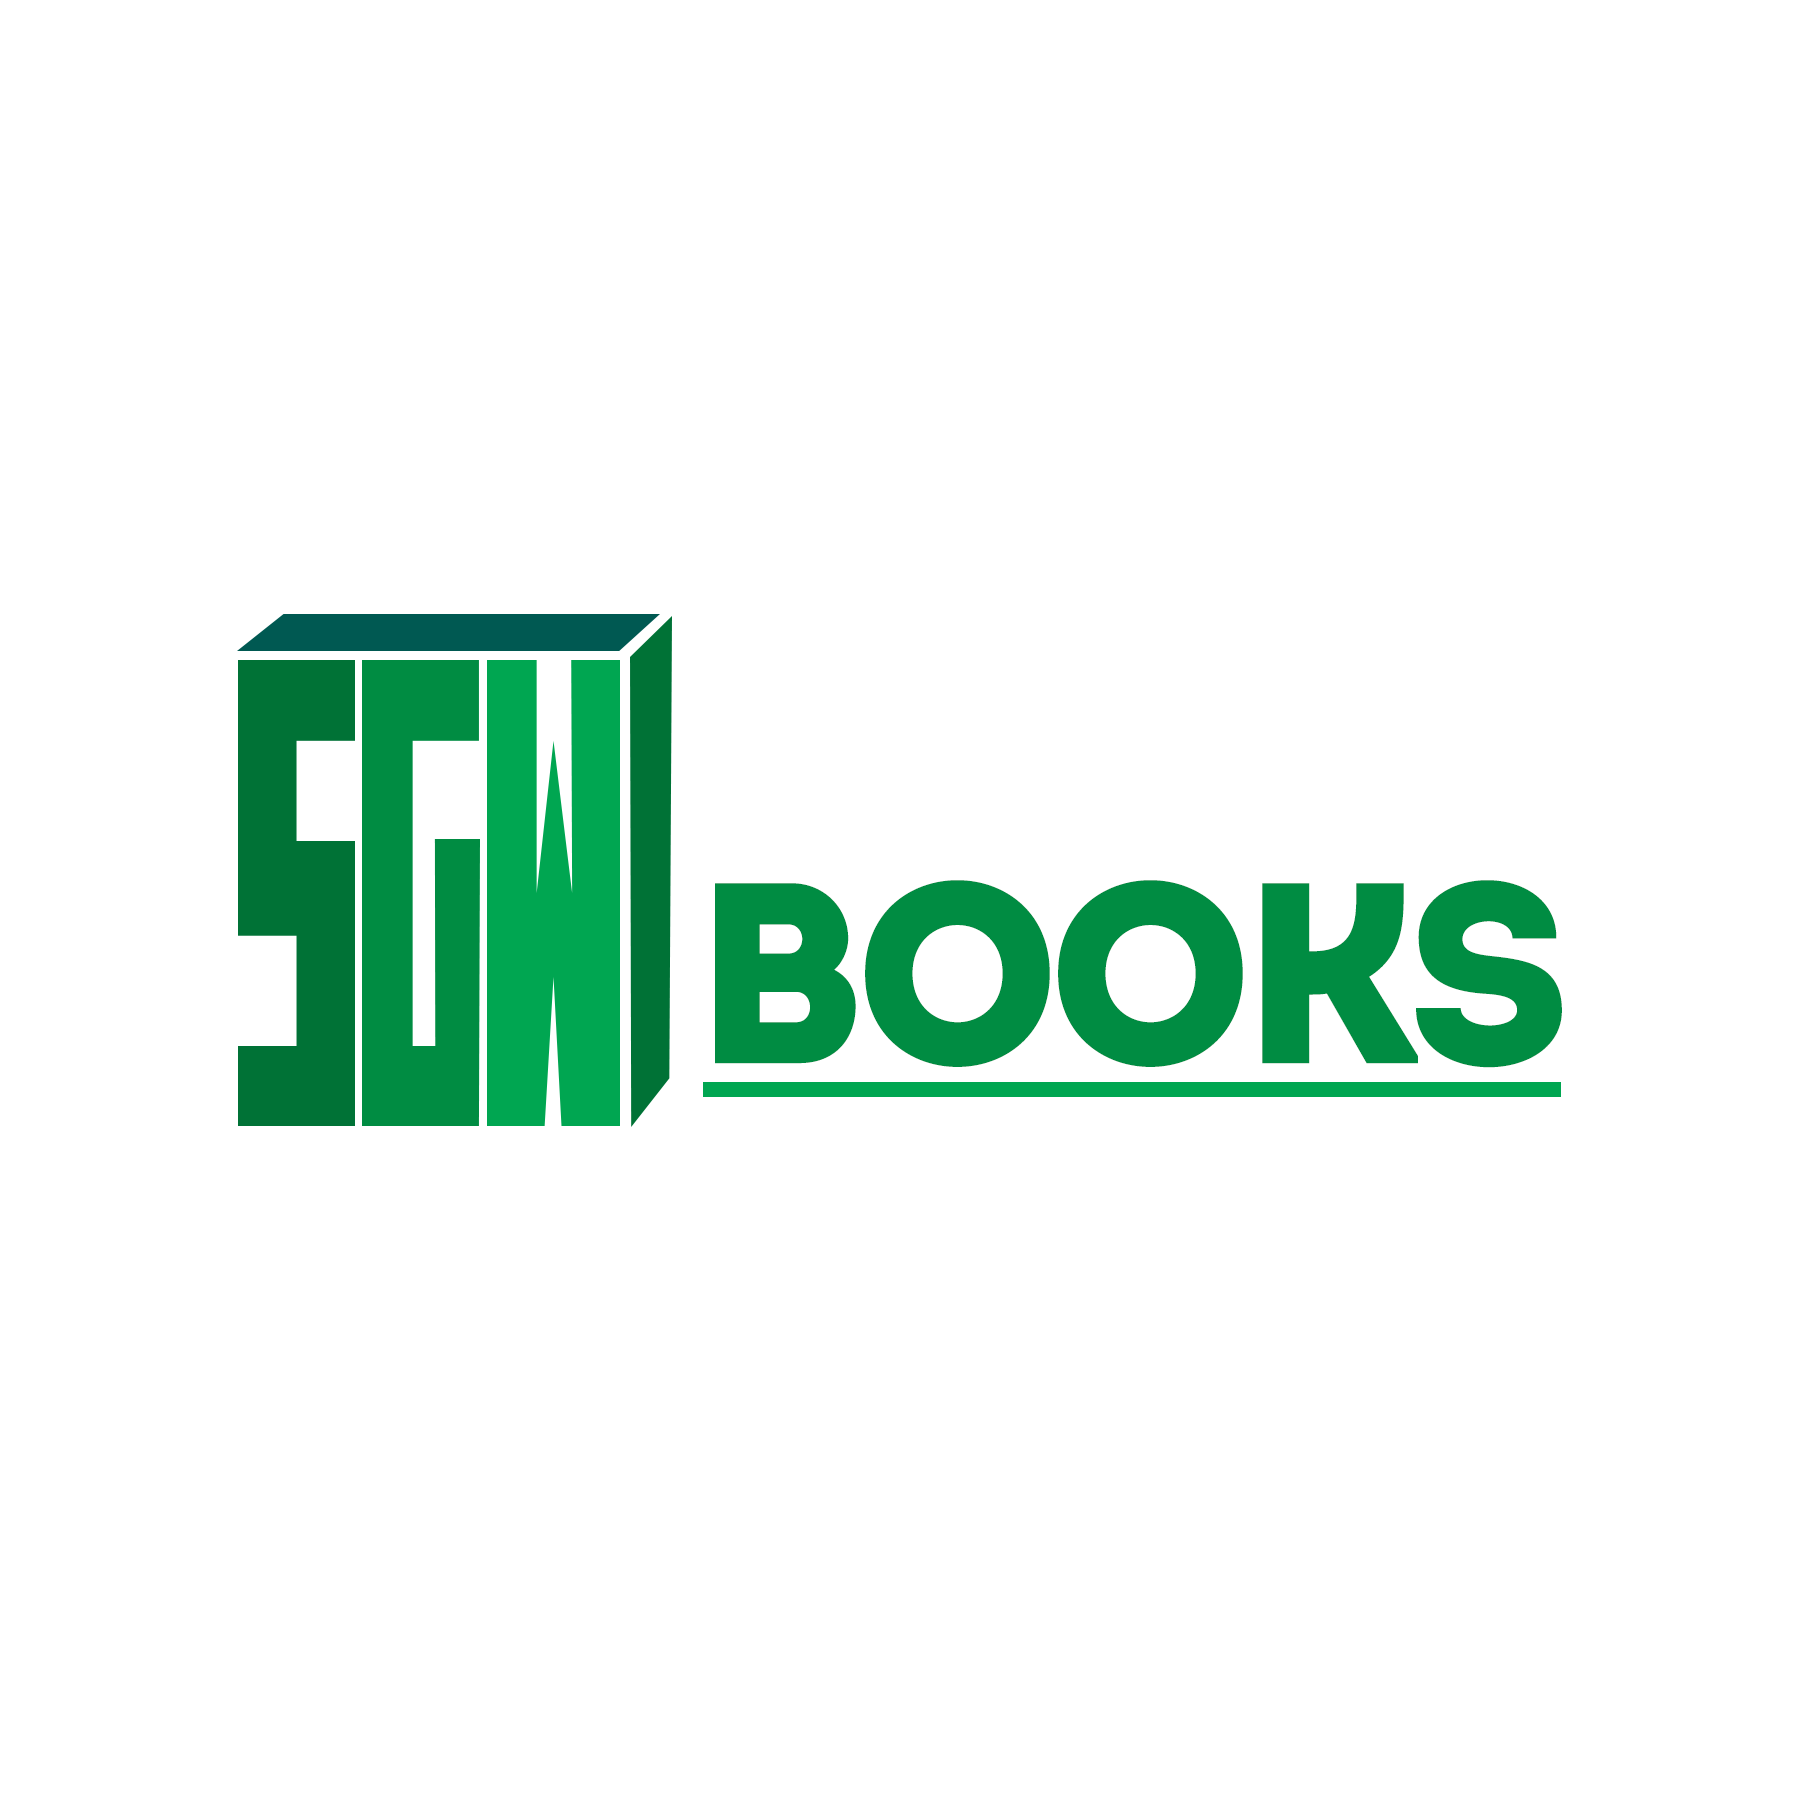 Logo Design by Lemuel Arvin Tanzo - Entry No. 70 in the Logo Design Contest SGW Books Logo Design.